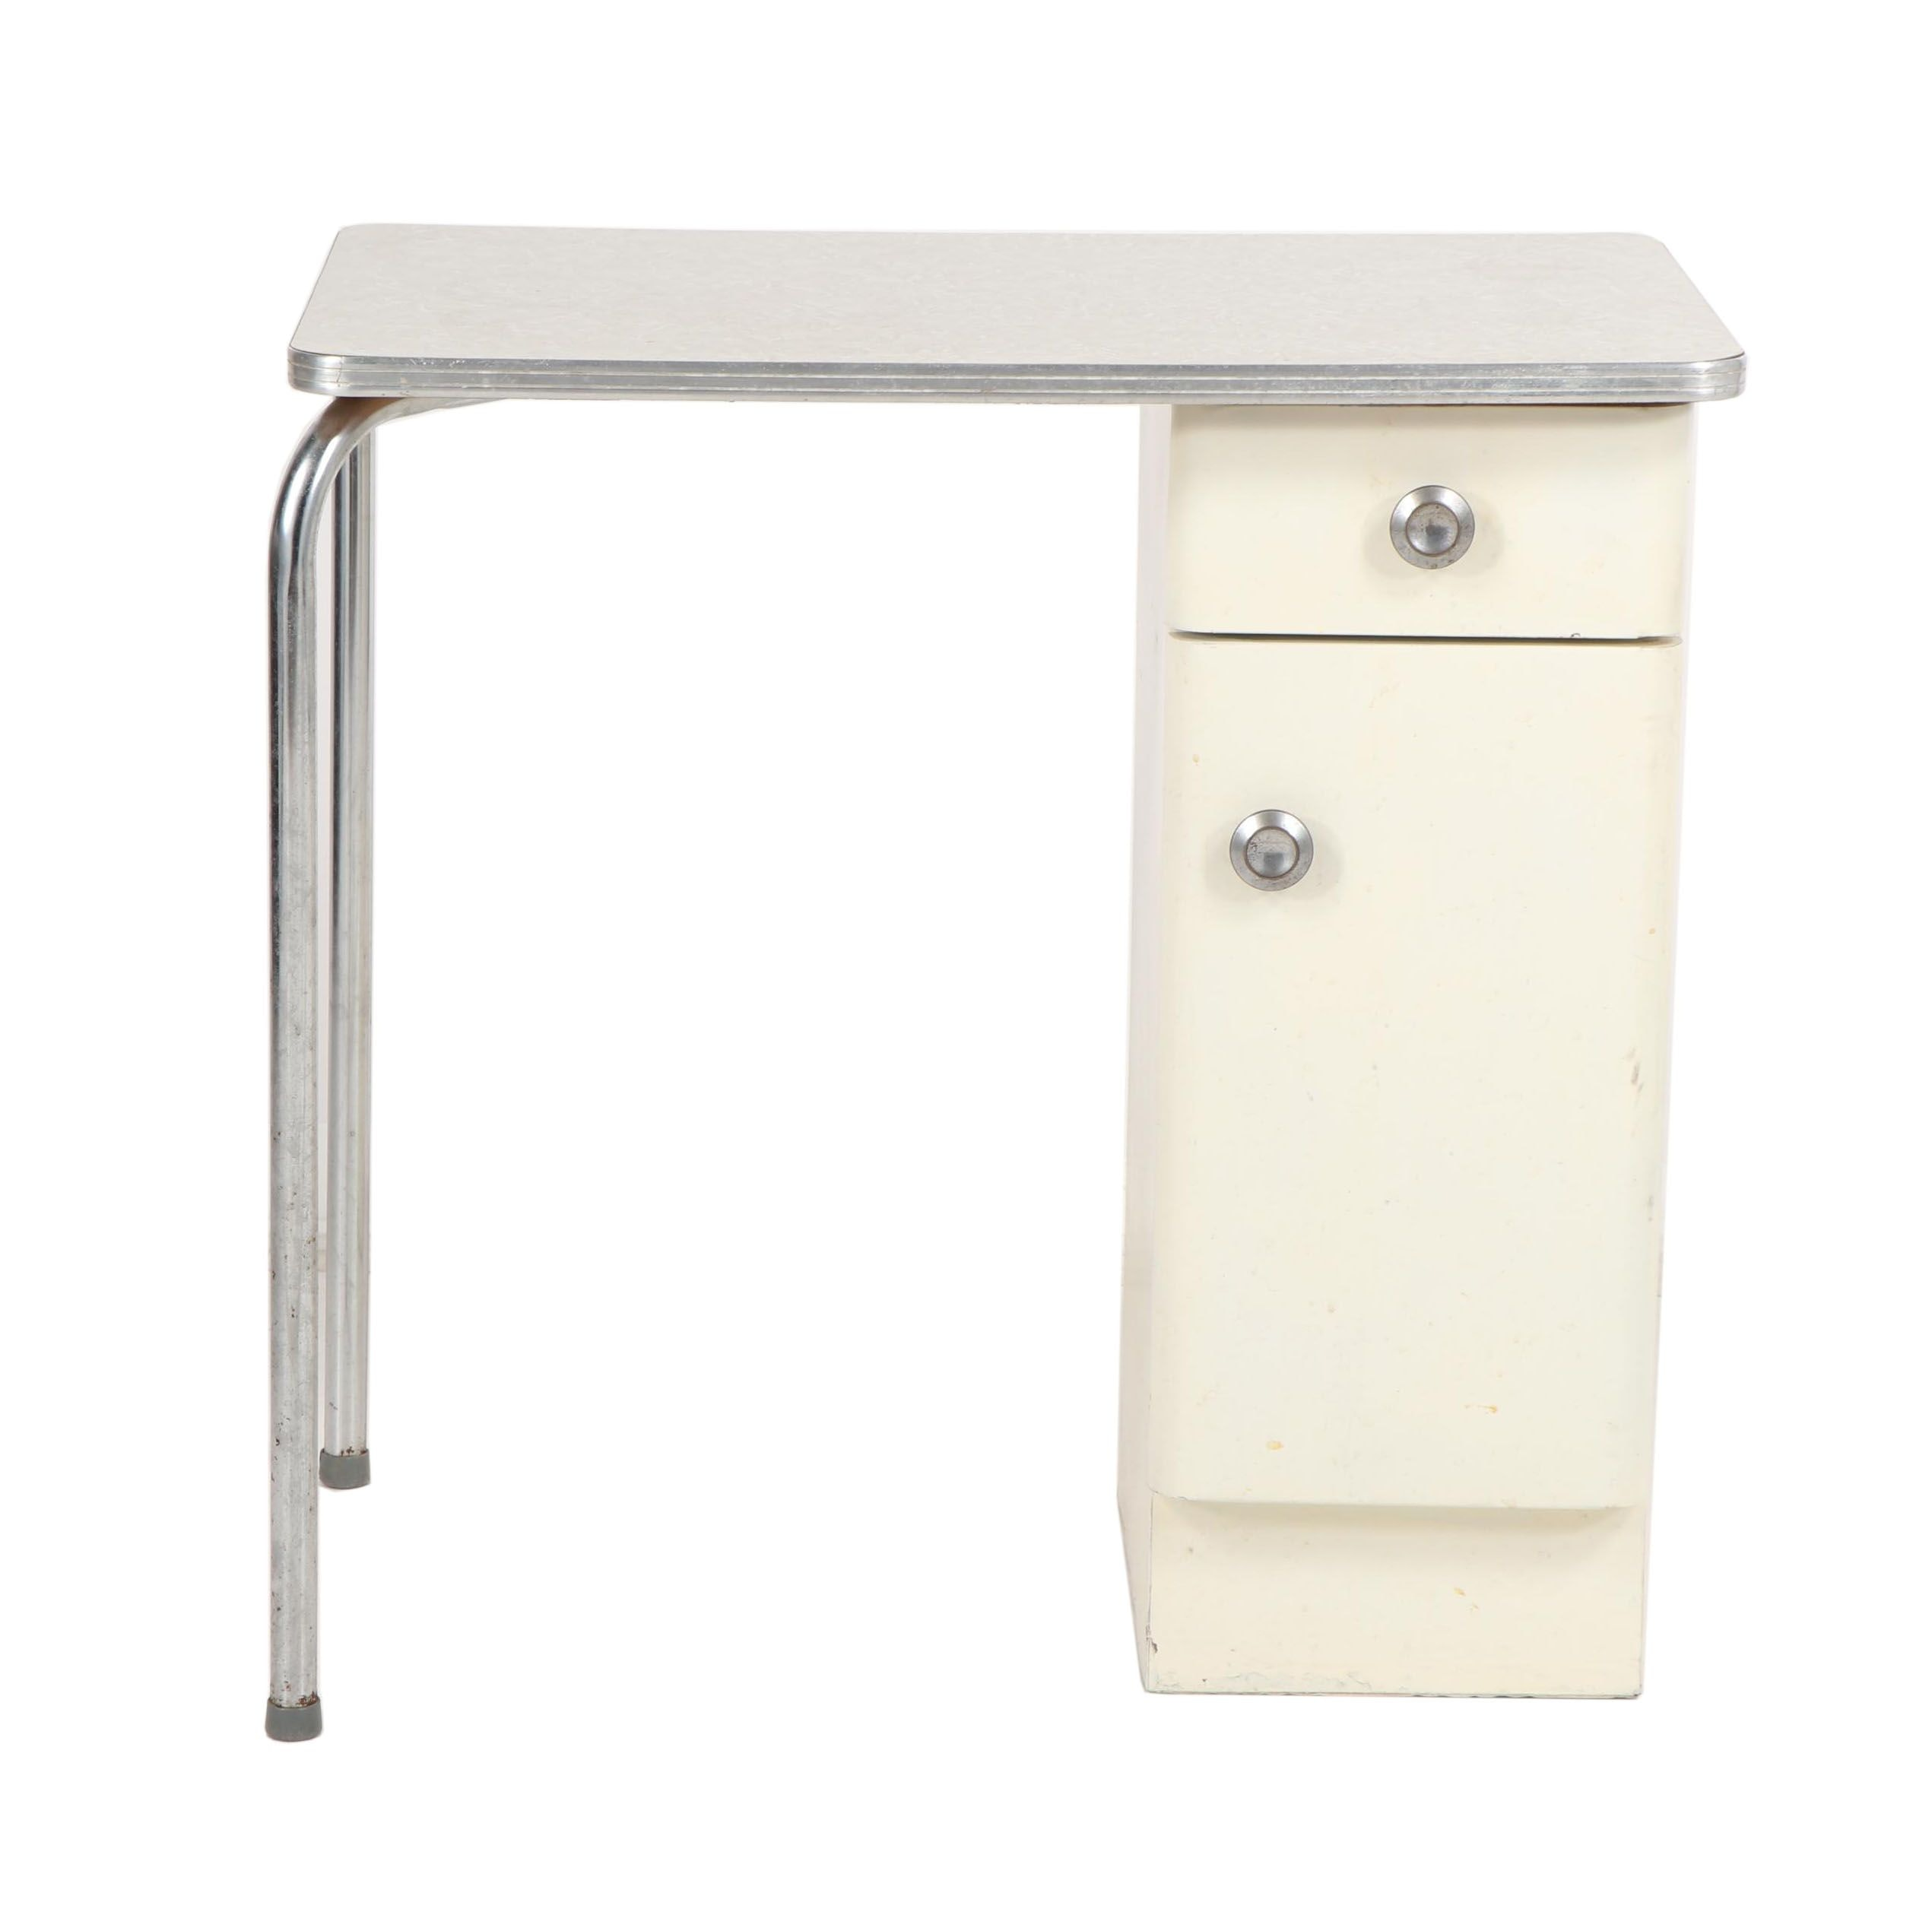 Formica and Metal Desk, Mid-20th Century